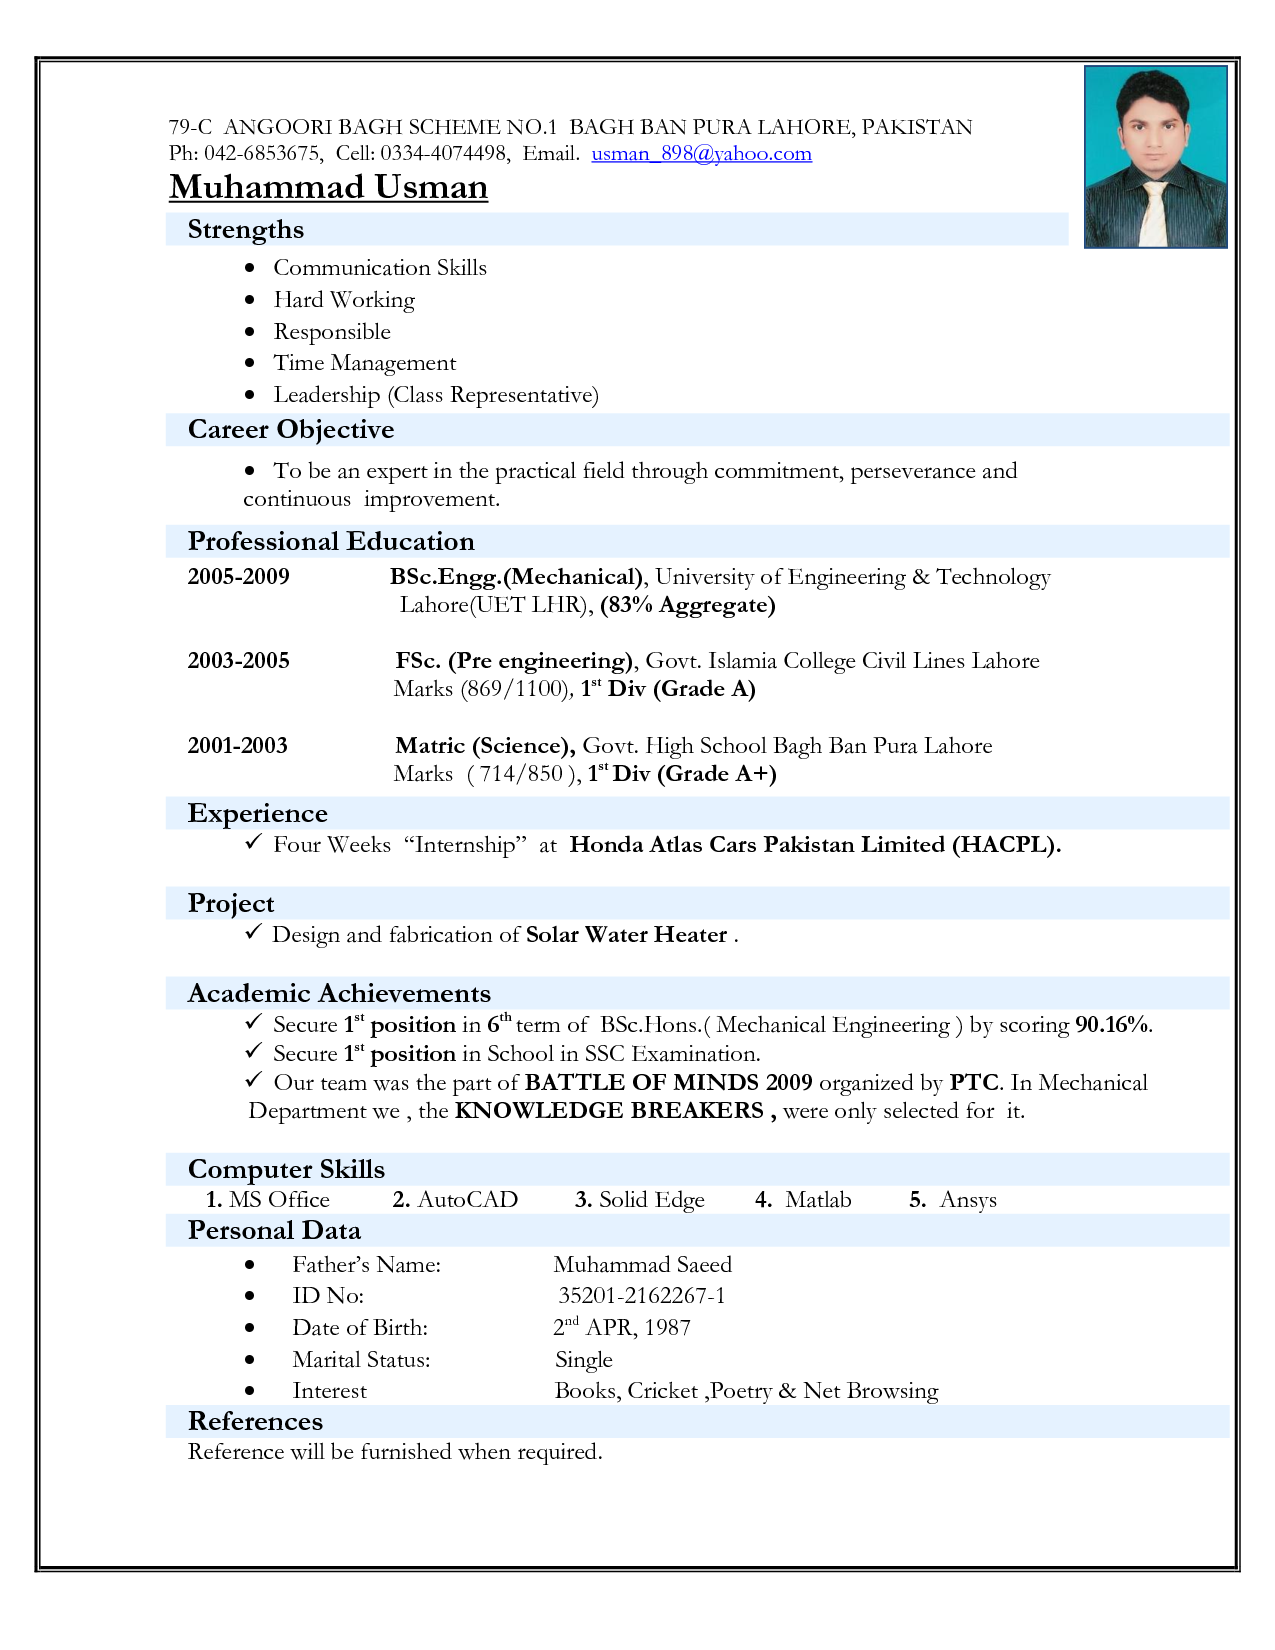 Samples Of Curriculum Vitae Resume Sample In Word Document Mbamarketing & Sales Fresher